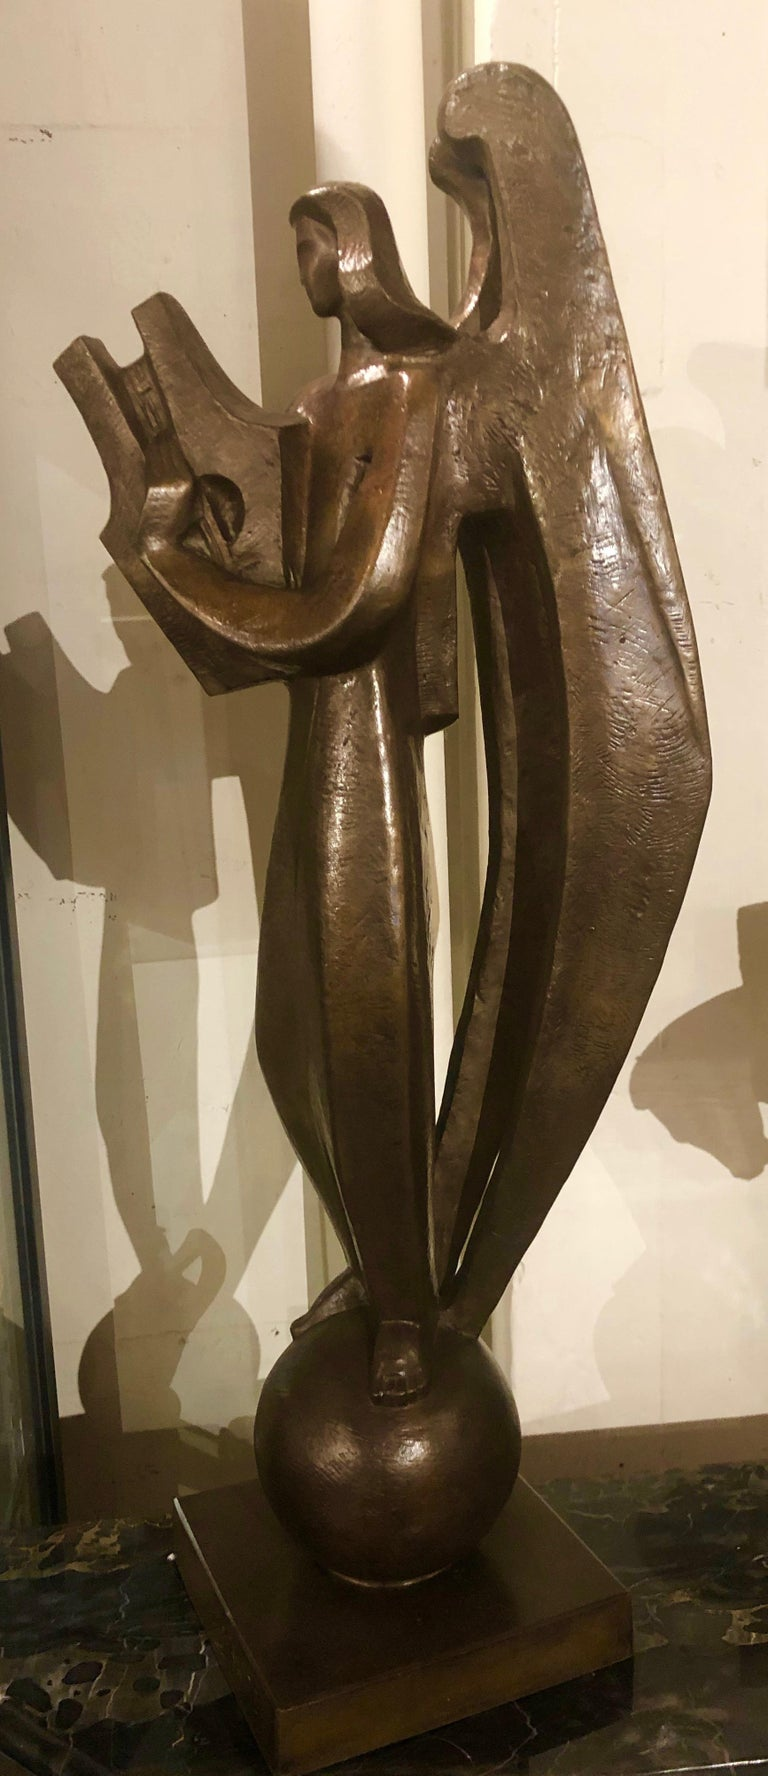 Original bronze by Jan and Joel Martel. Image of a stylized cubist Angel playing a harp.. Rare and famous figurative bronze made by Susse Frères foundry cast posthumously from the original with permission of the family in 2002. Signed: